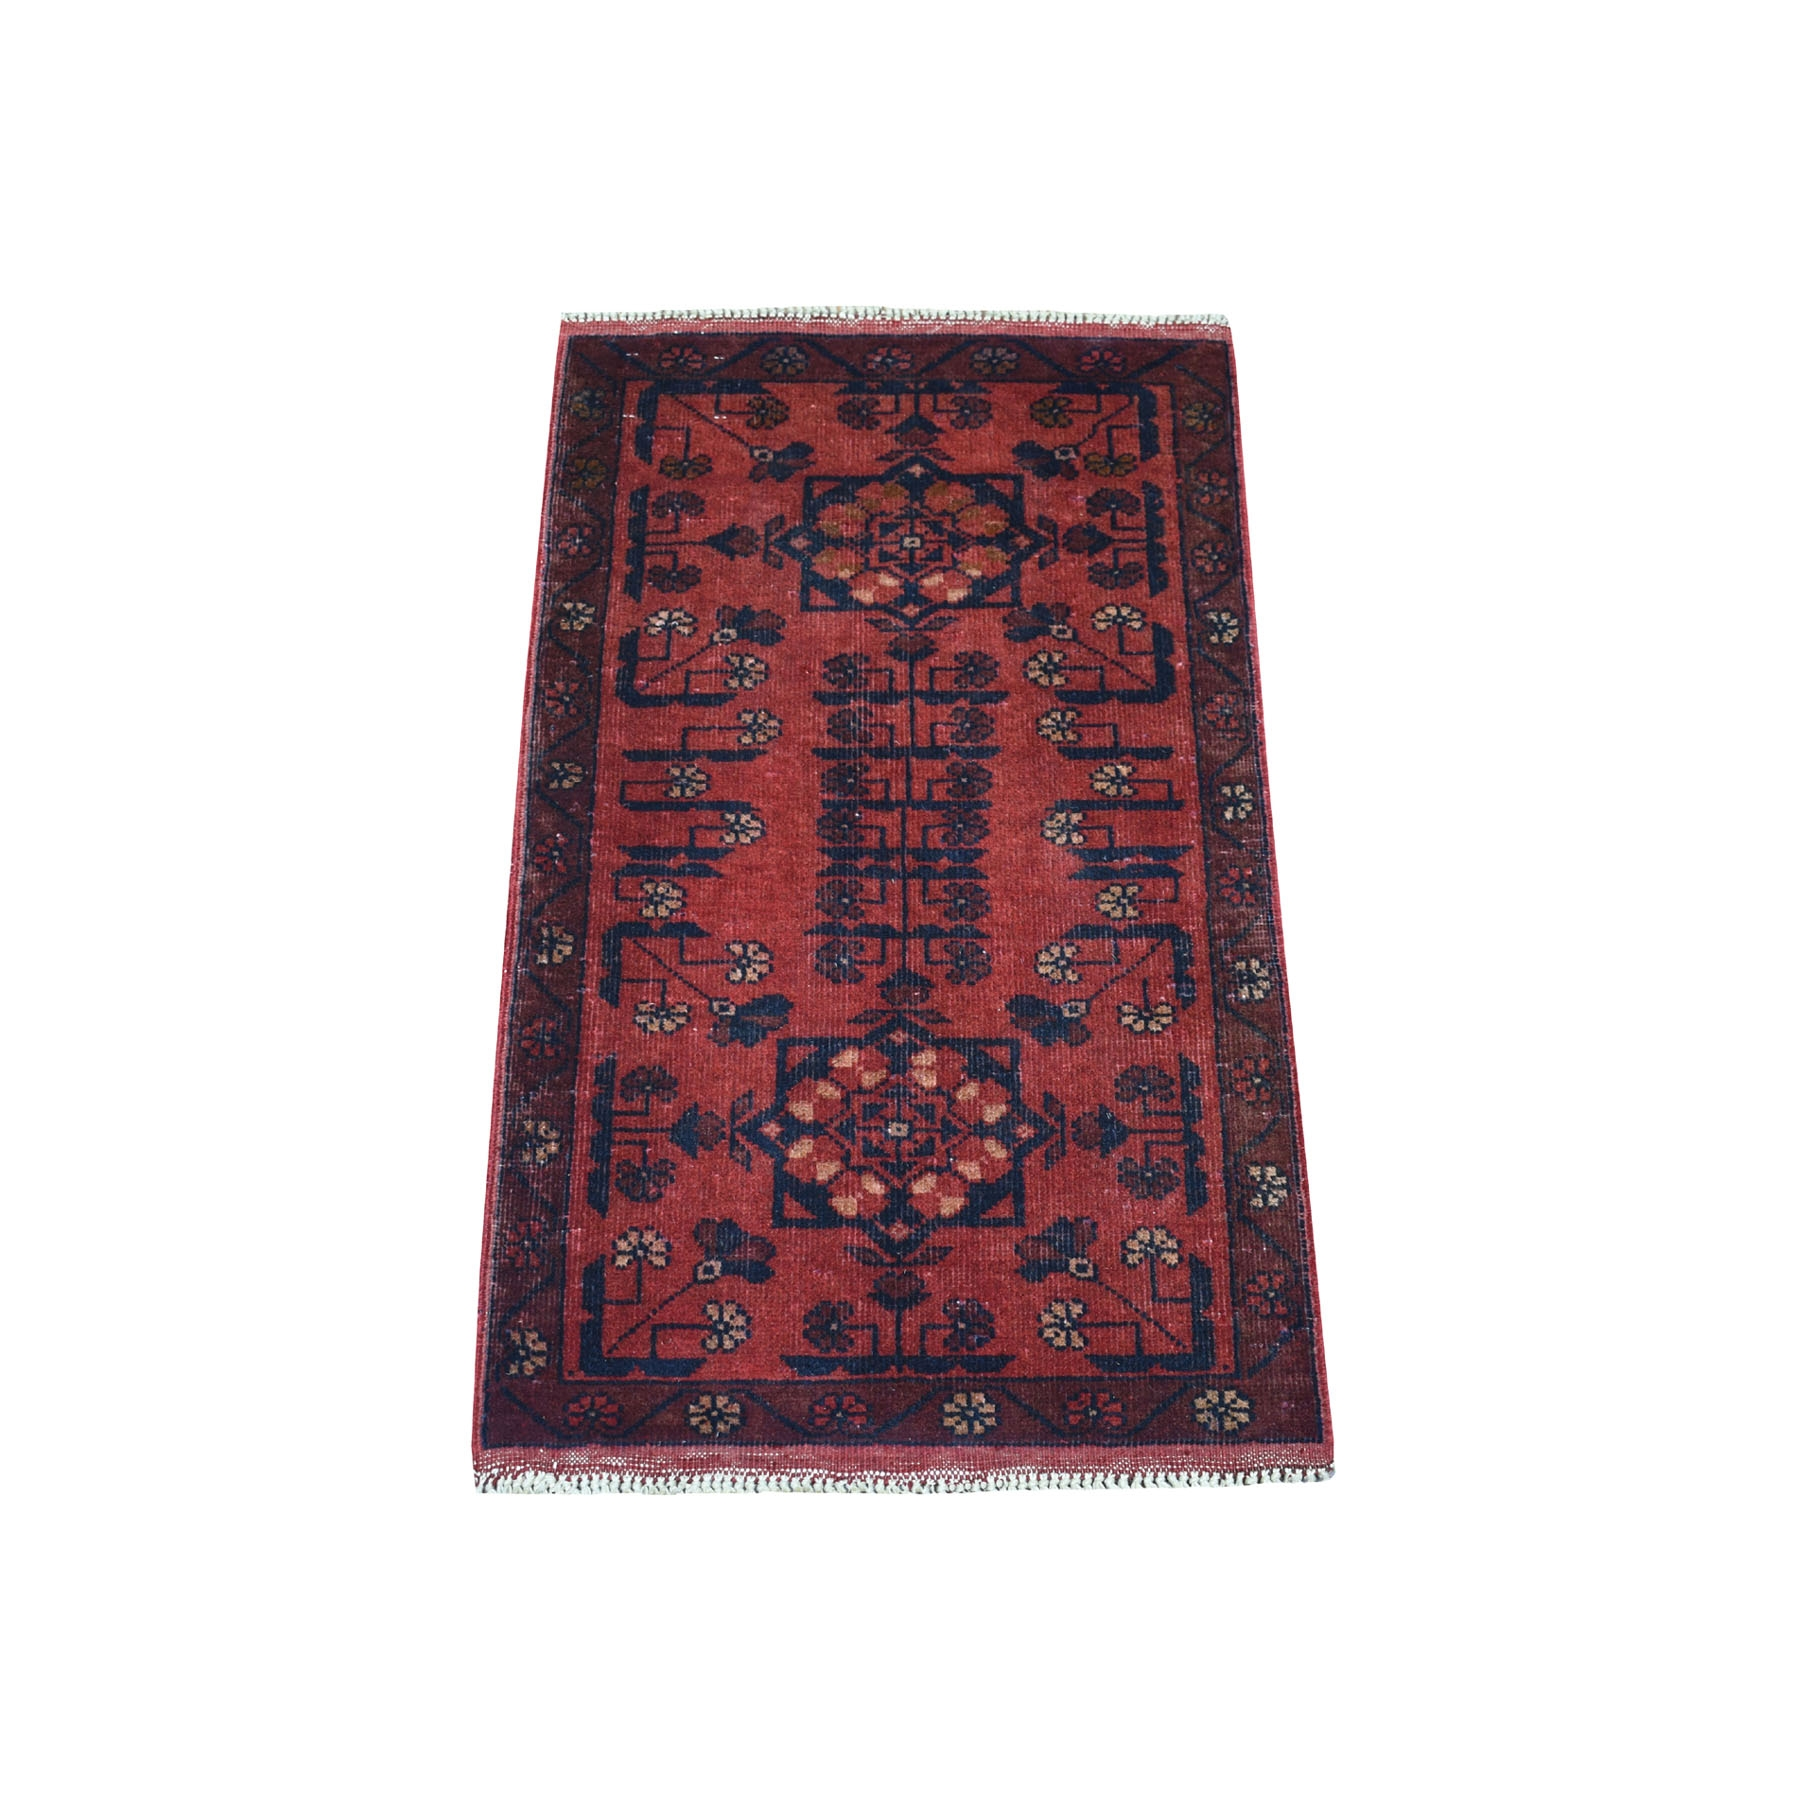 "1'9""x3' Deep and Saturated Red Geometric Design Afghan Andkhoy Pure Wool Hand Woven Oriental Rug"